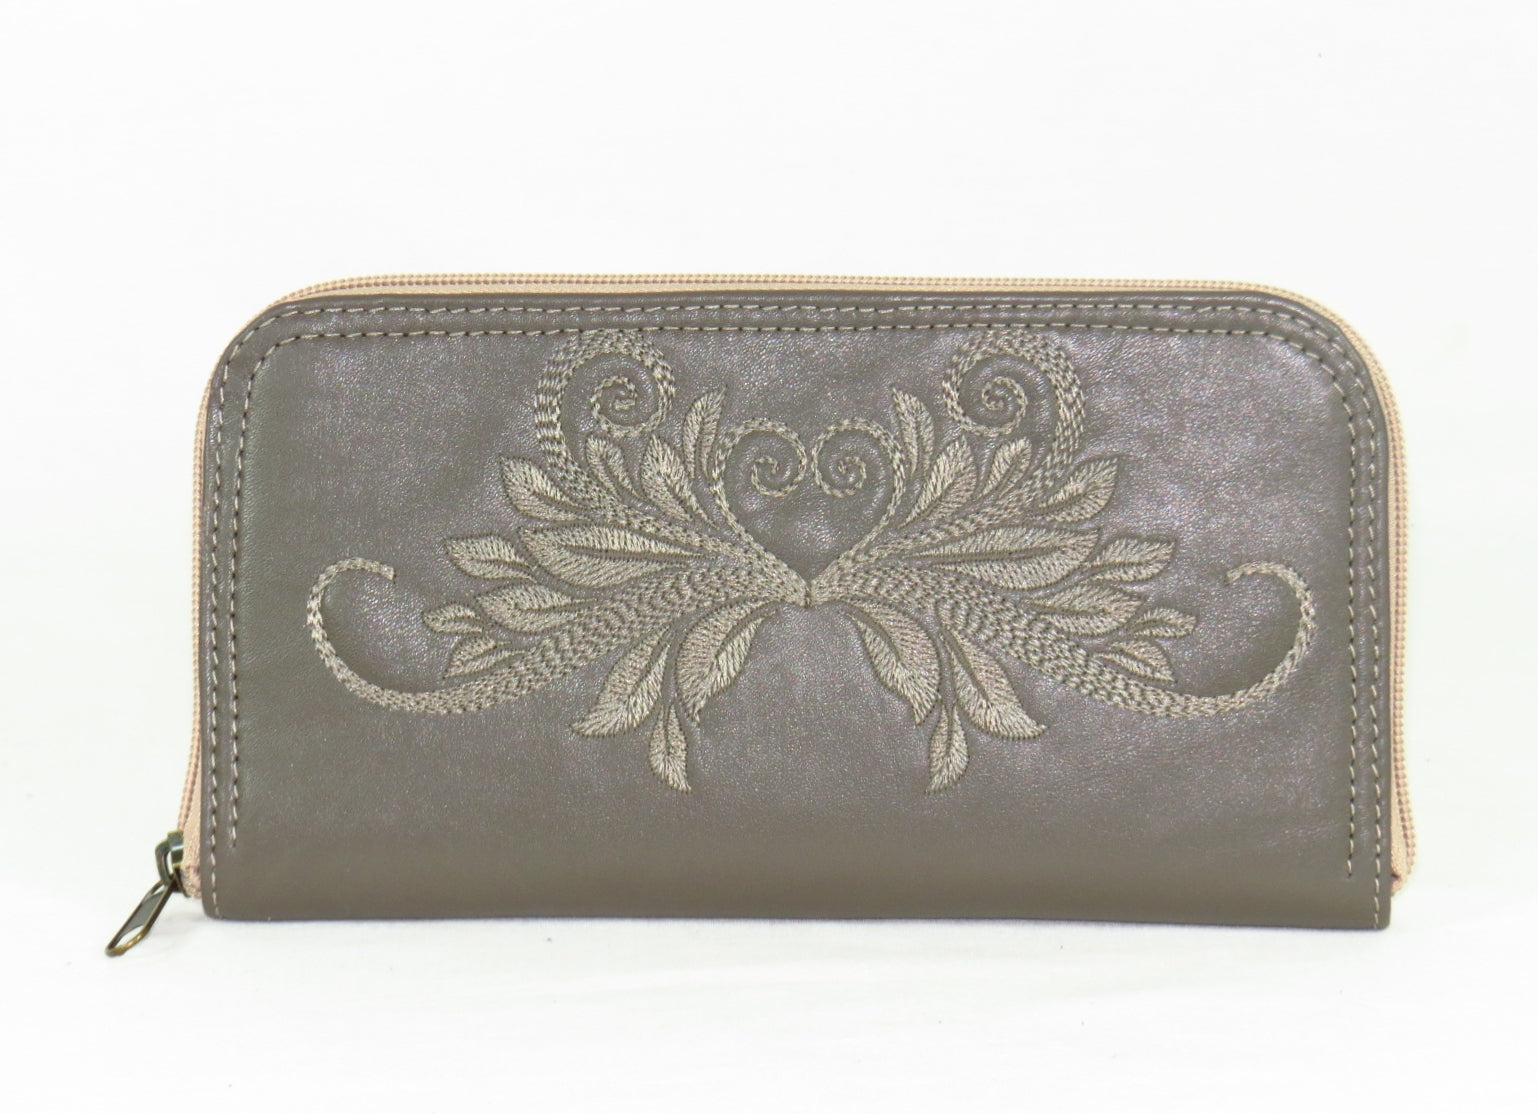 d56485ffca Khaki Gray Tone on Tone Embroidered Leather Wallet